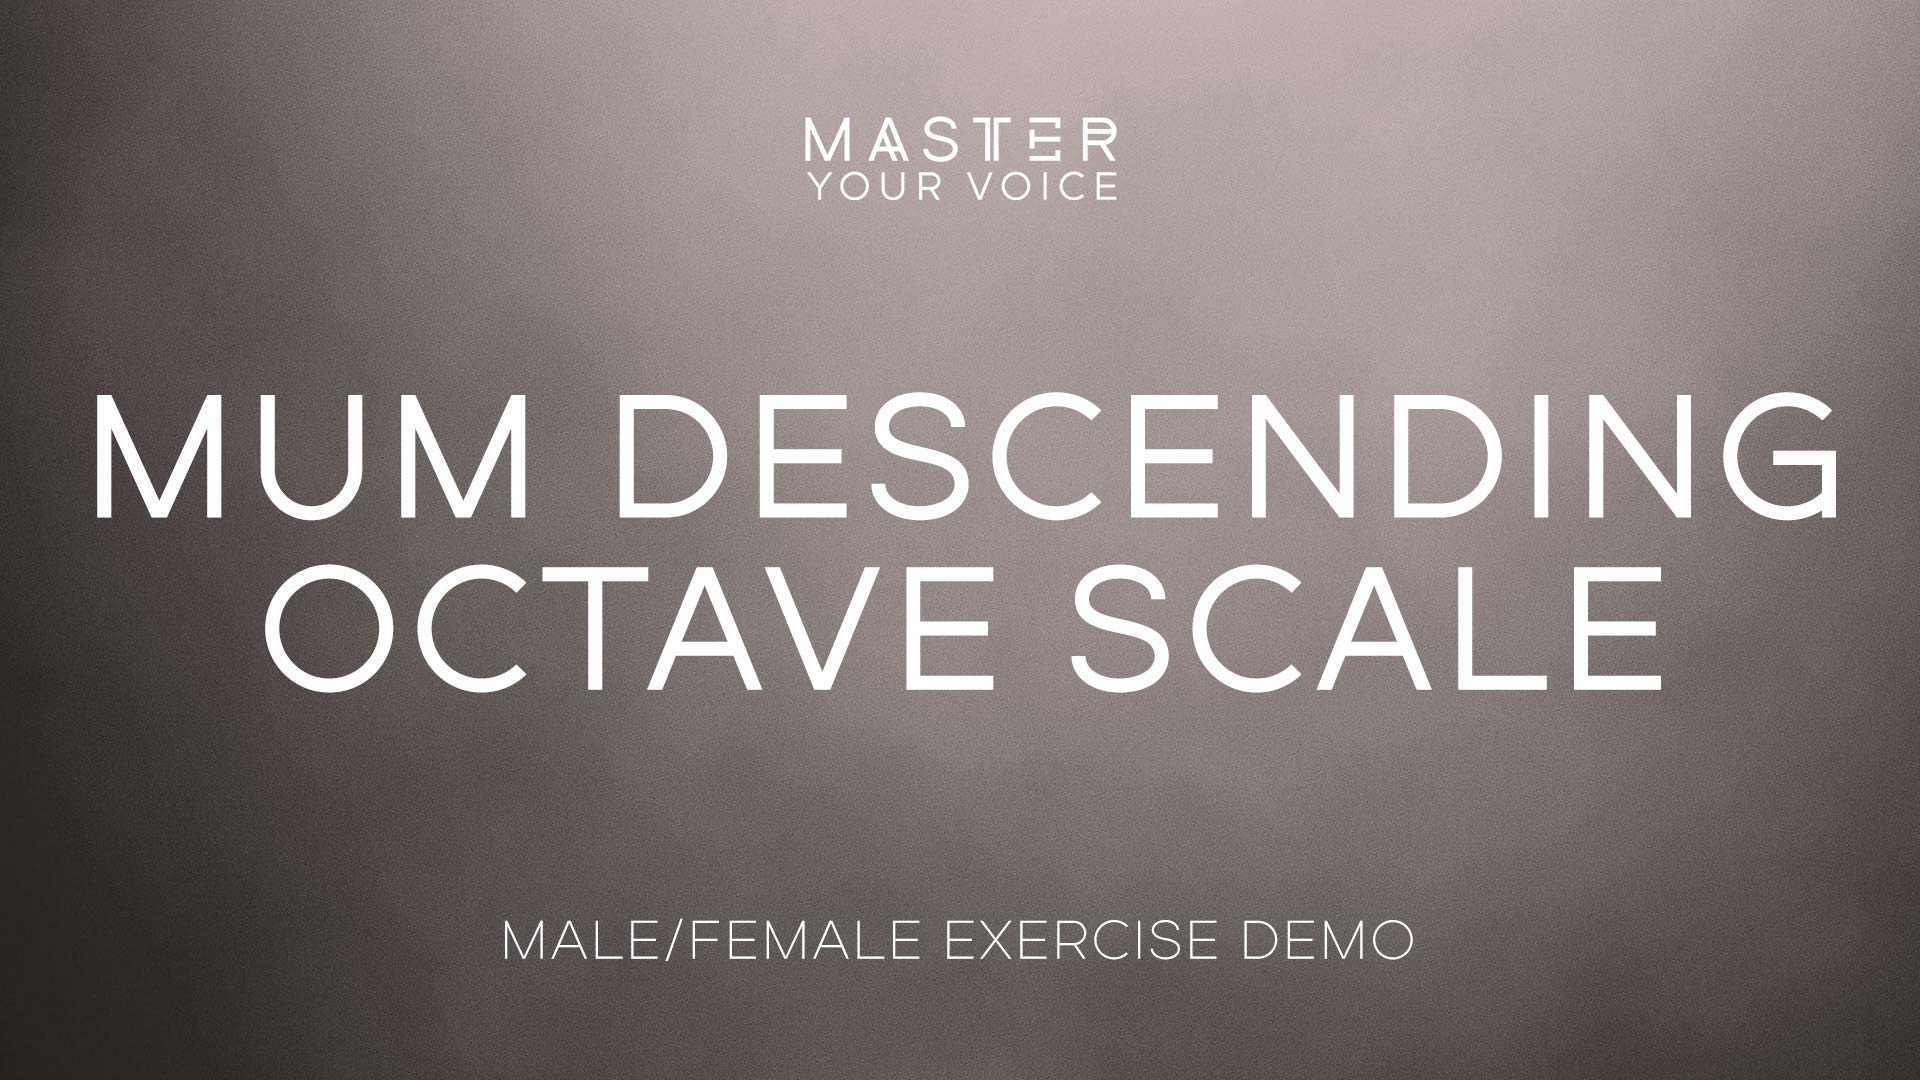 Mum Descending Octave Scale Exercise Demo